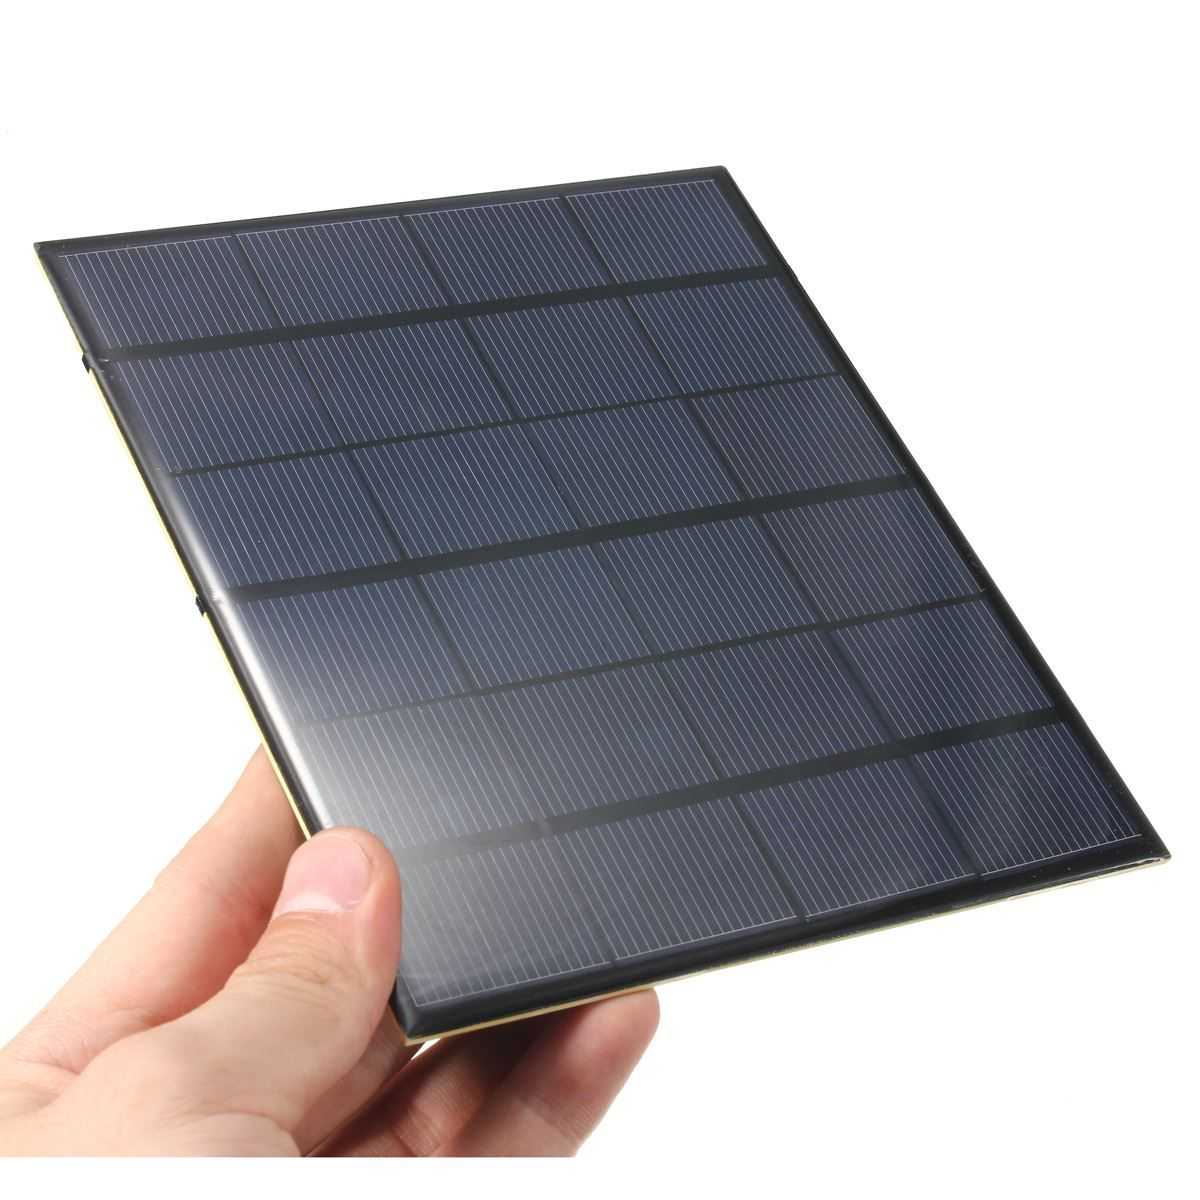 Universal 3 5w 6v 583ma Monocrystalline Silicon Epoxy Mini Solar Panel Solar Module System Solar Cells Mini Solar Panel Diy Solar Charger Flexible Solar Panels